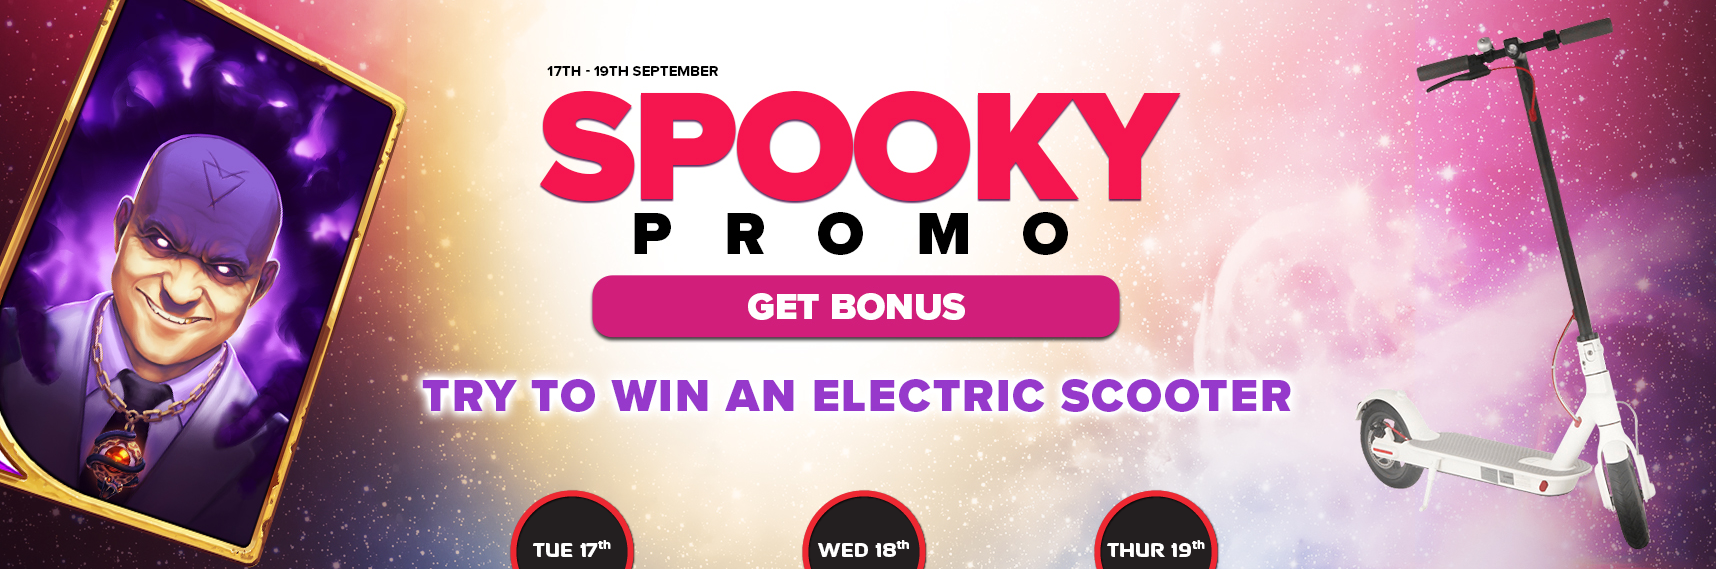 Win an electric scooter during the Spooky Promo